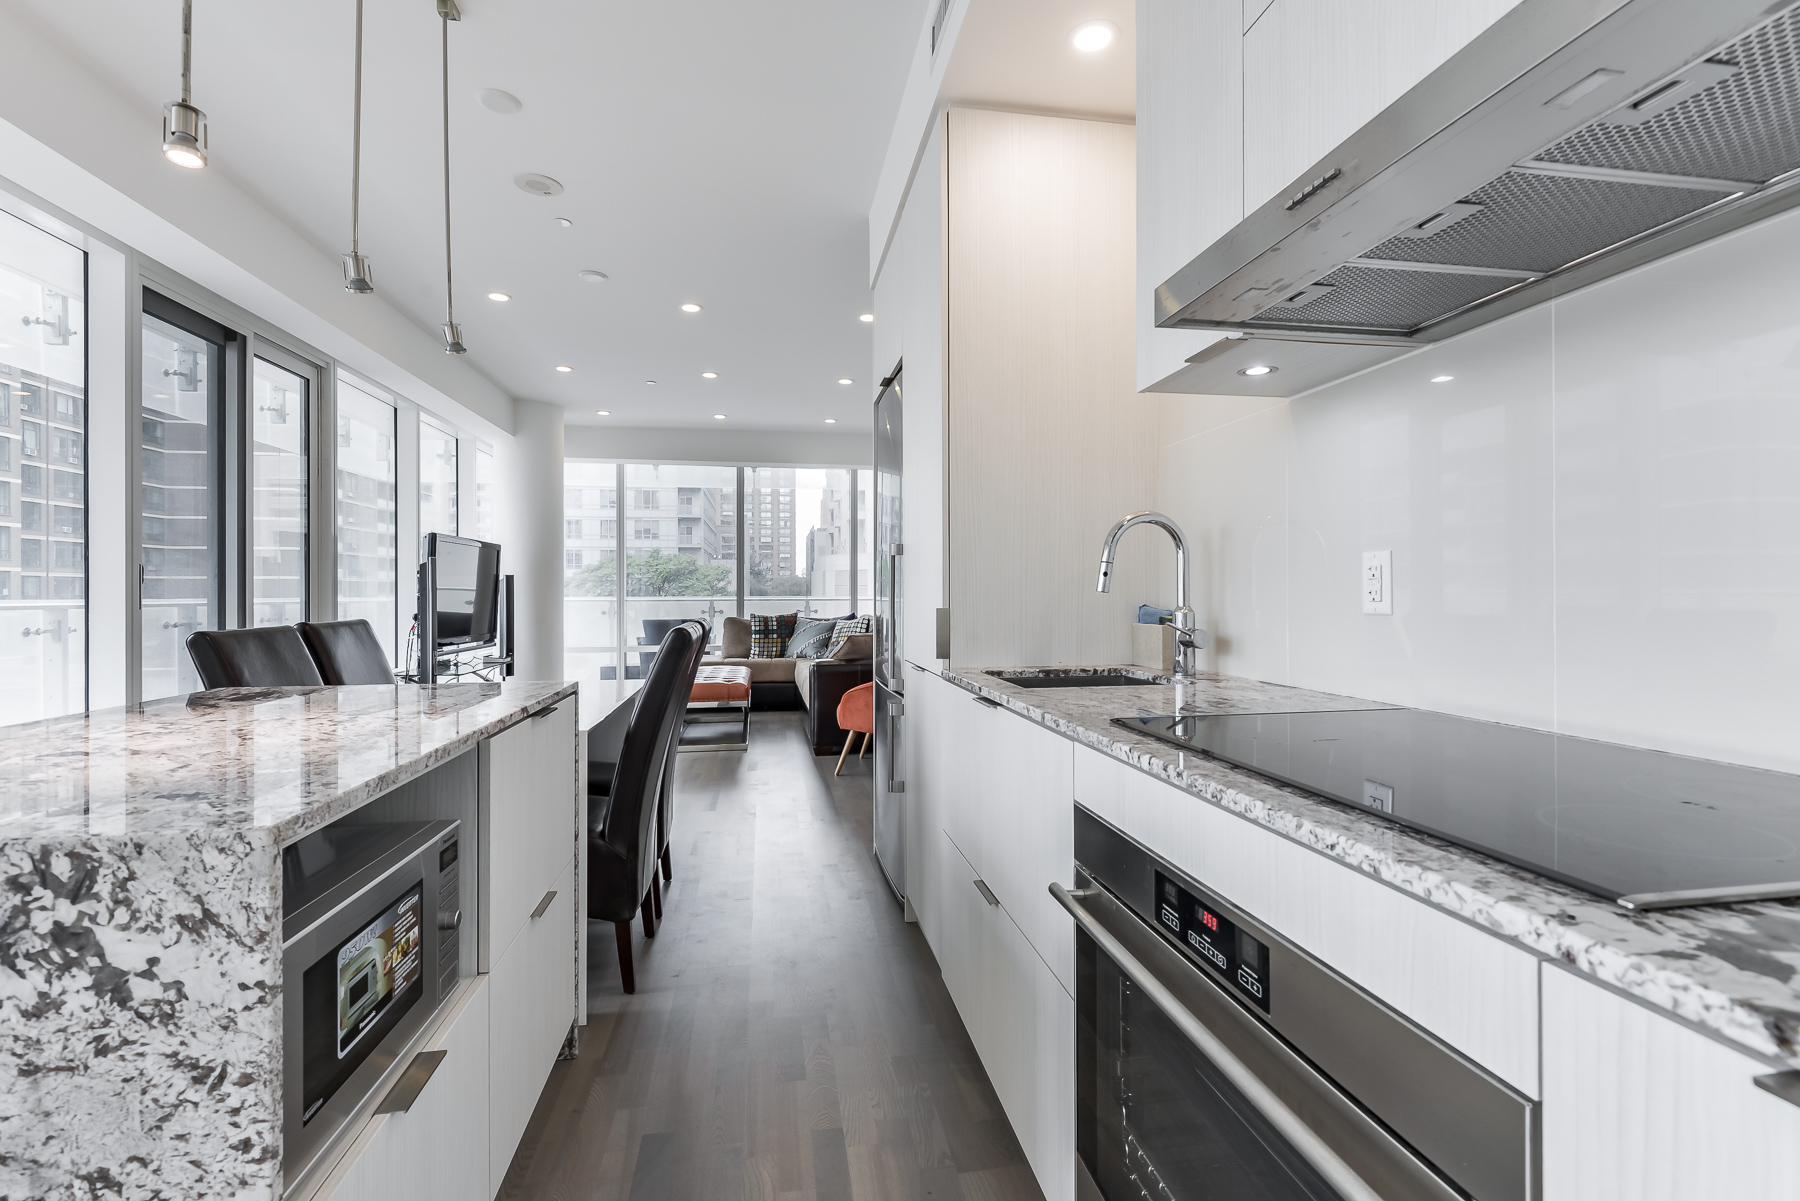 Close up of kitchen, island and appliances at 1 Bloor St E Unit 310 Toronto.